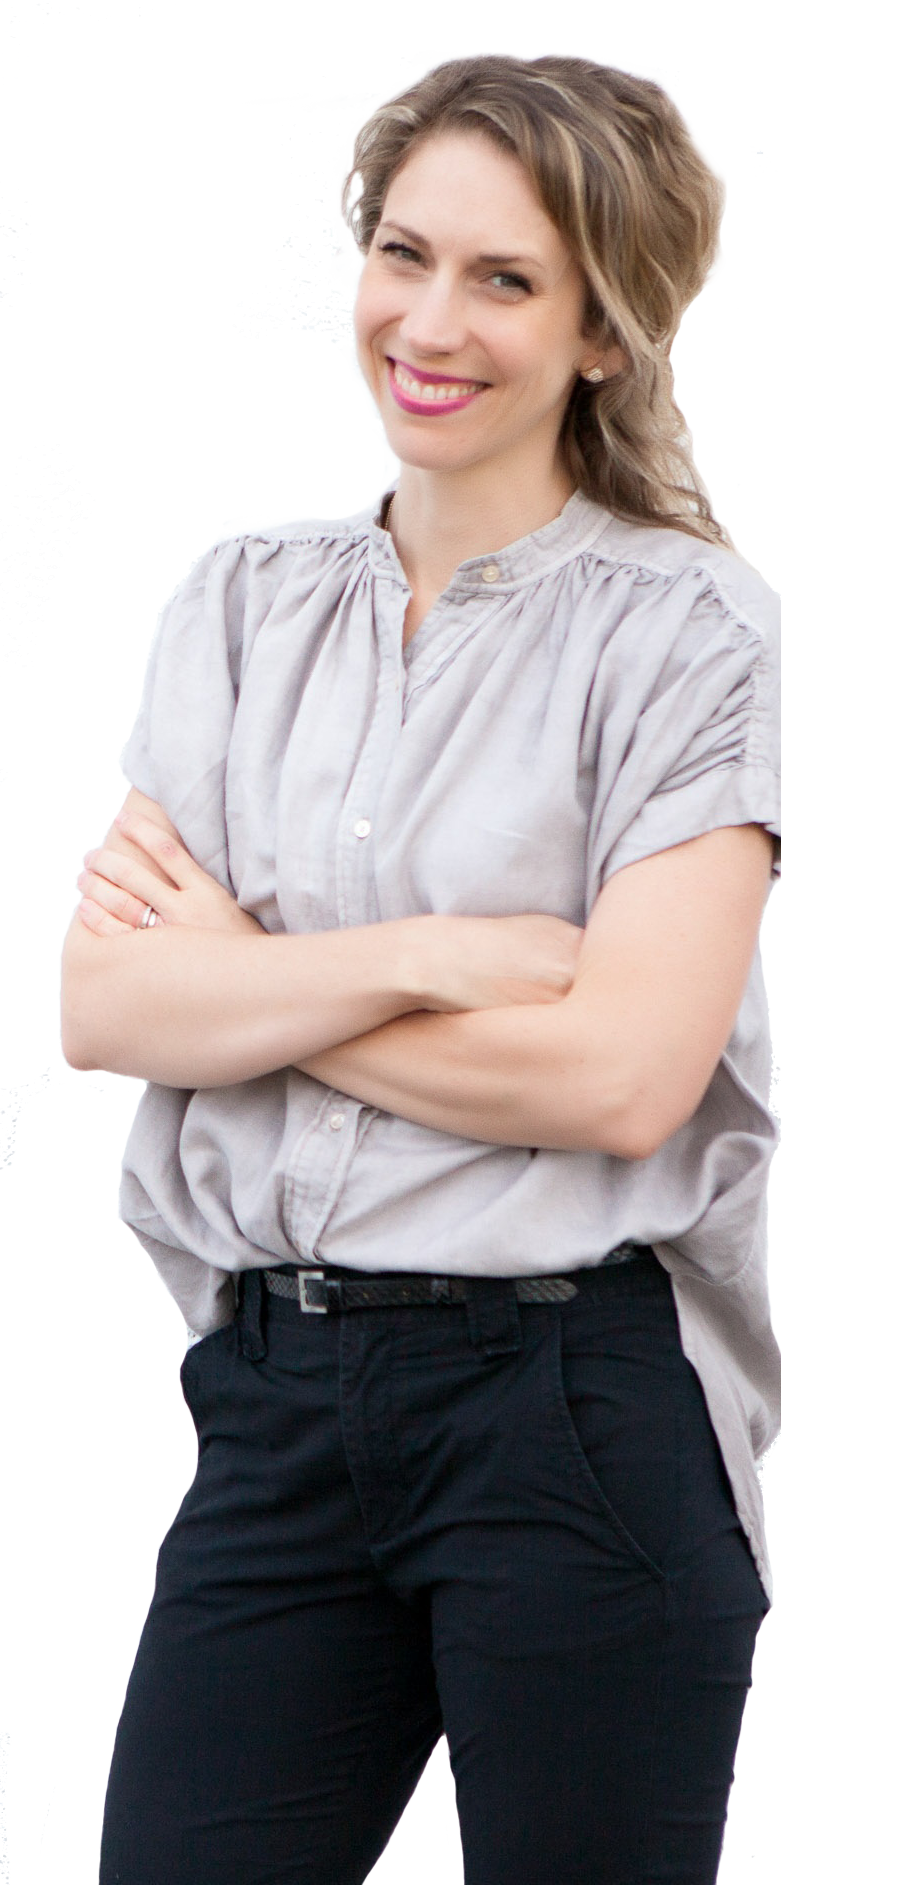 Julia knockout kristina counselling. Arms folded png picture freeuse stock